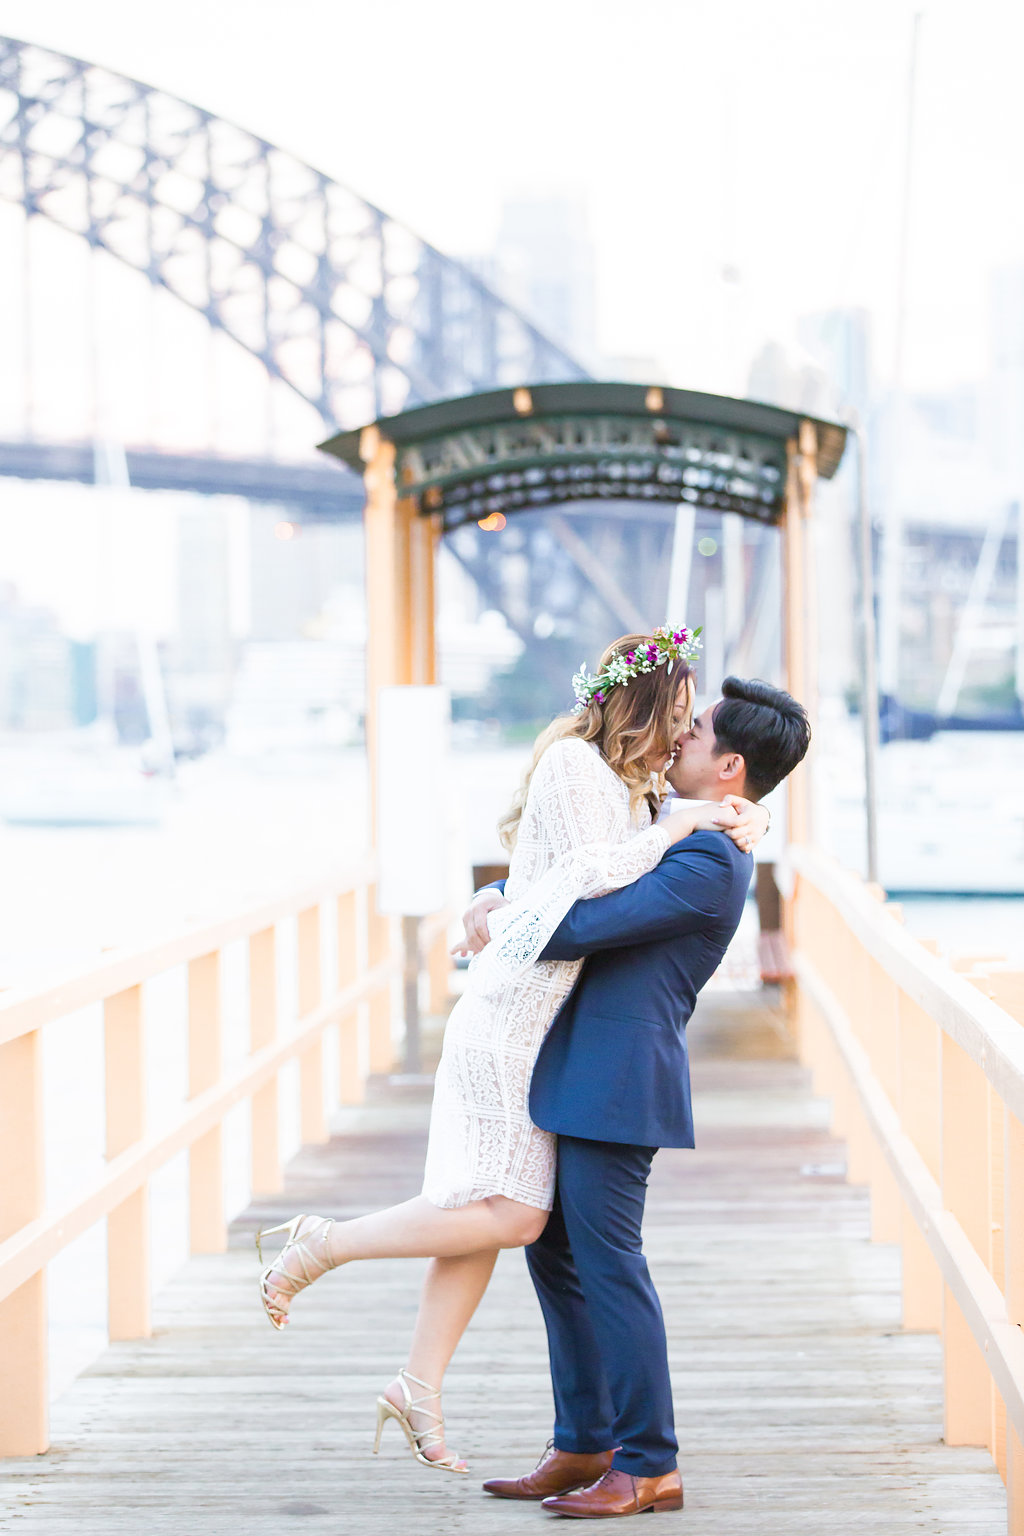 Sydney Wedding Photographer - Lavender Bay - Jennifer Lam Photography (20).jpg